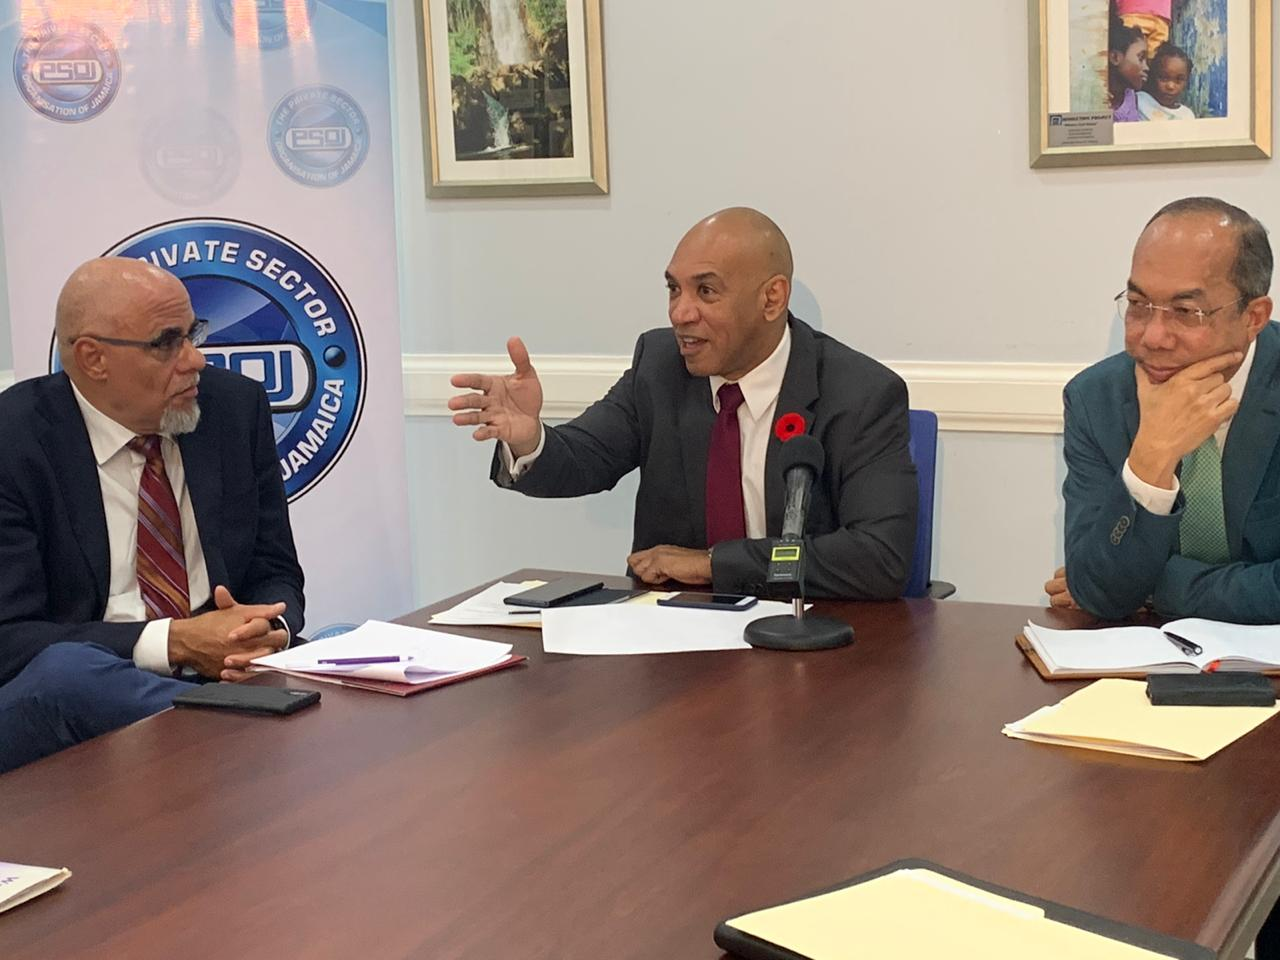 PRIVATE SECTOR AND GOVERNMENT CONTINUE WORK TO ADDRESS PUBLIC DISORDER ON THE ROADS